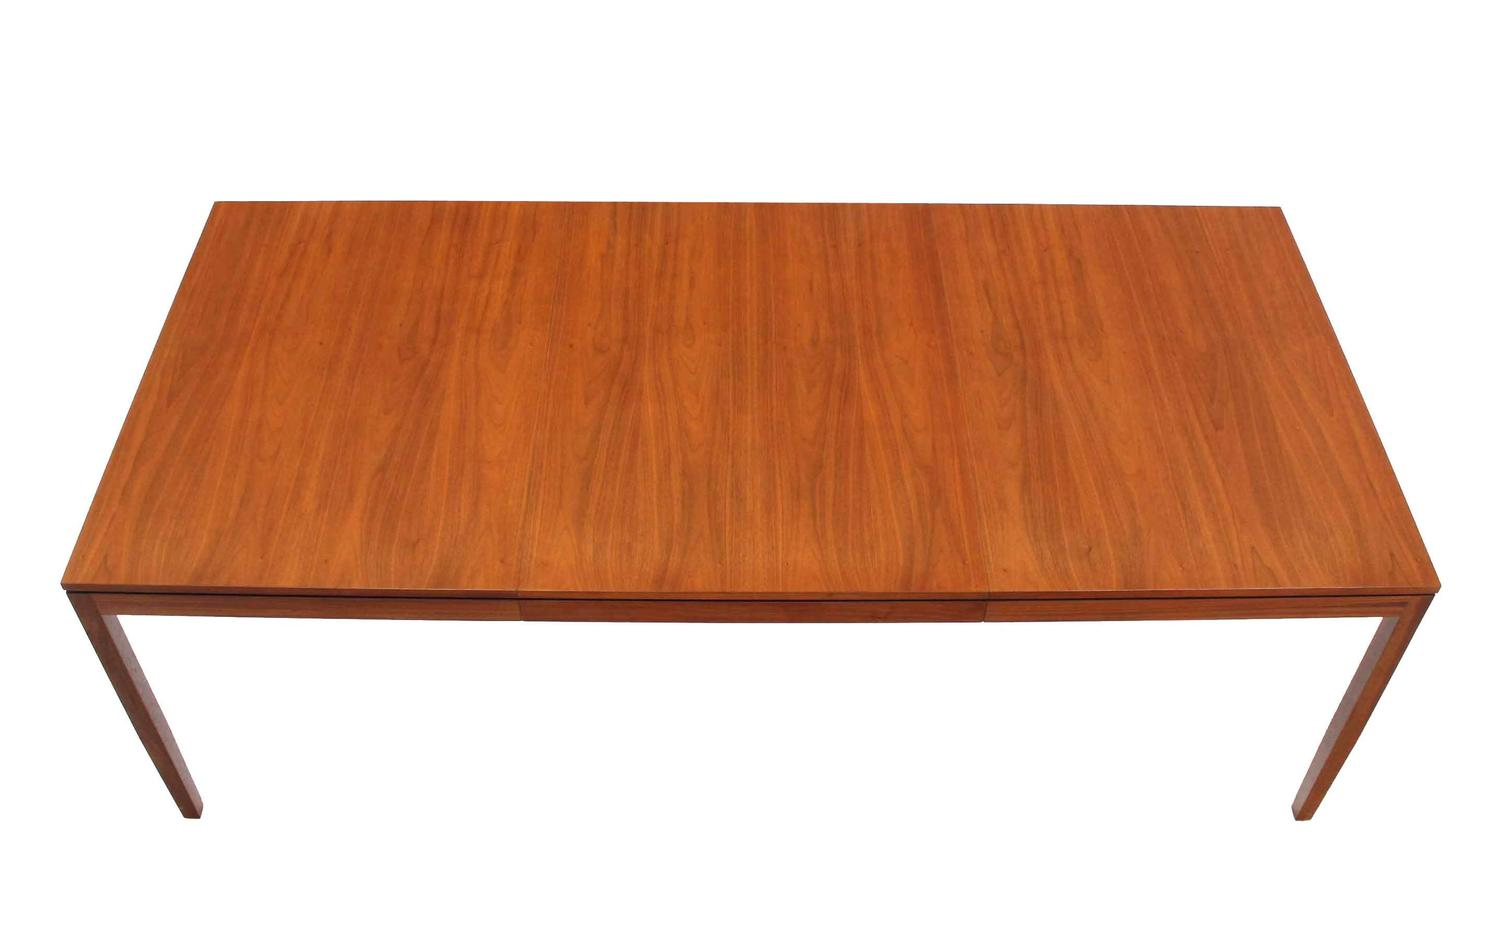 outstanding quality walnut dining room table by knoll at